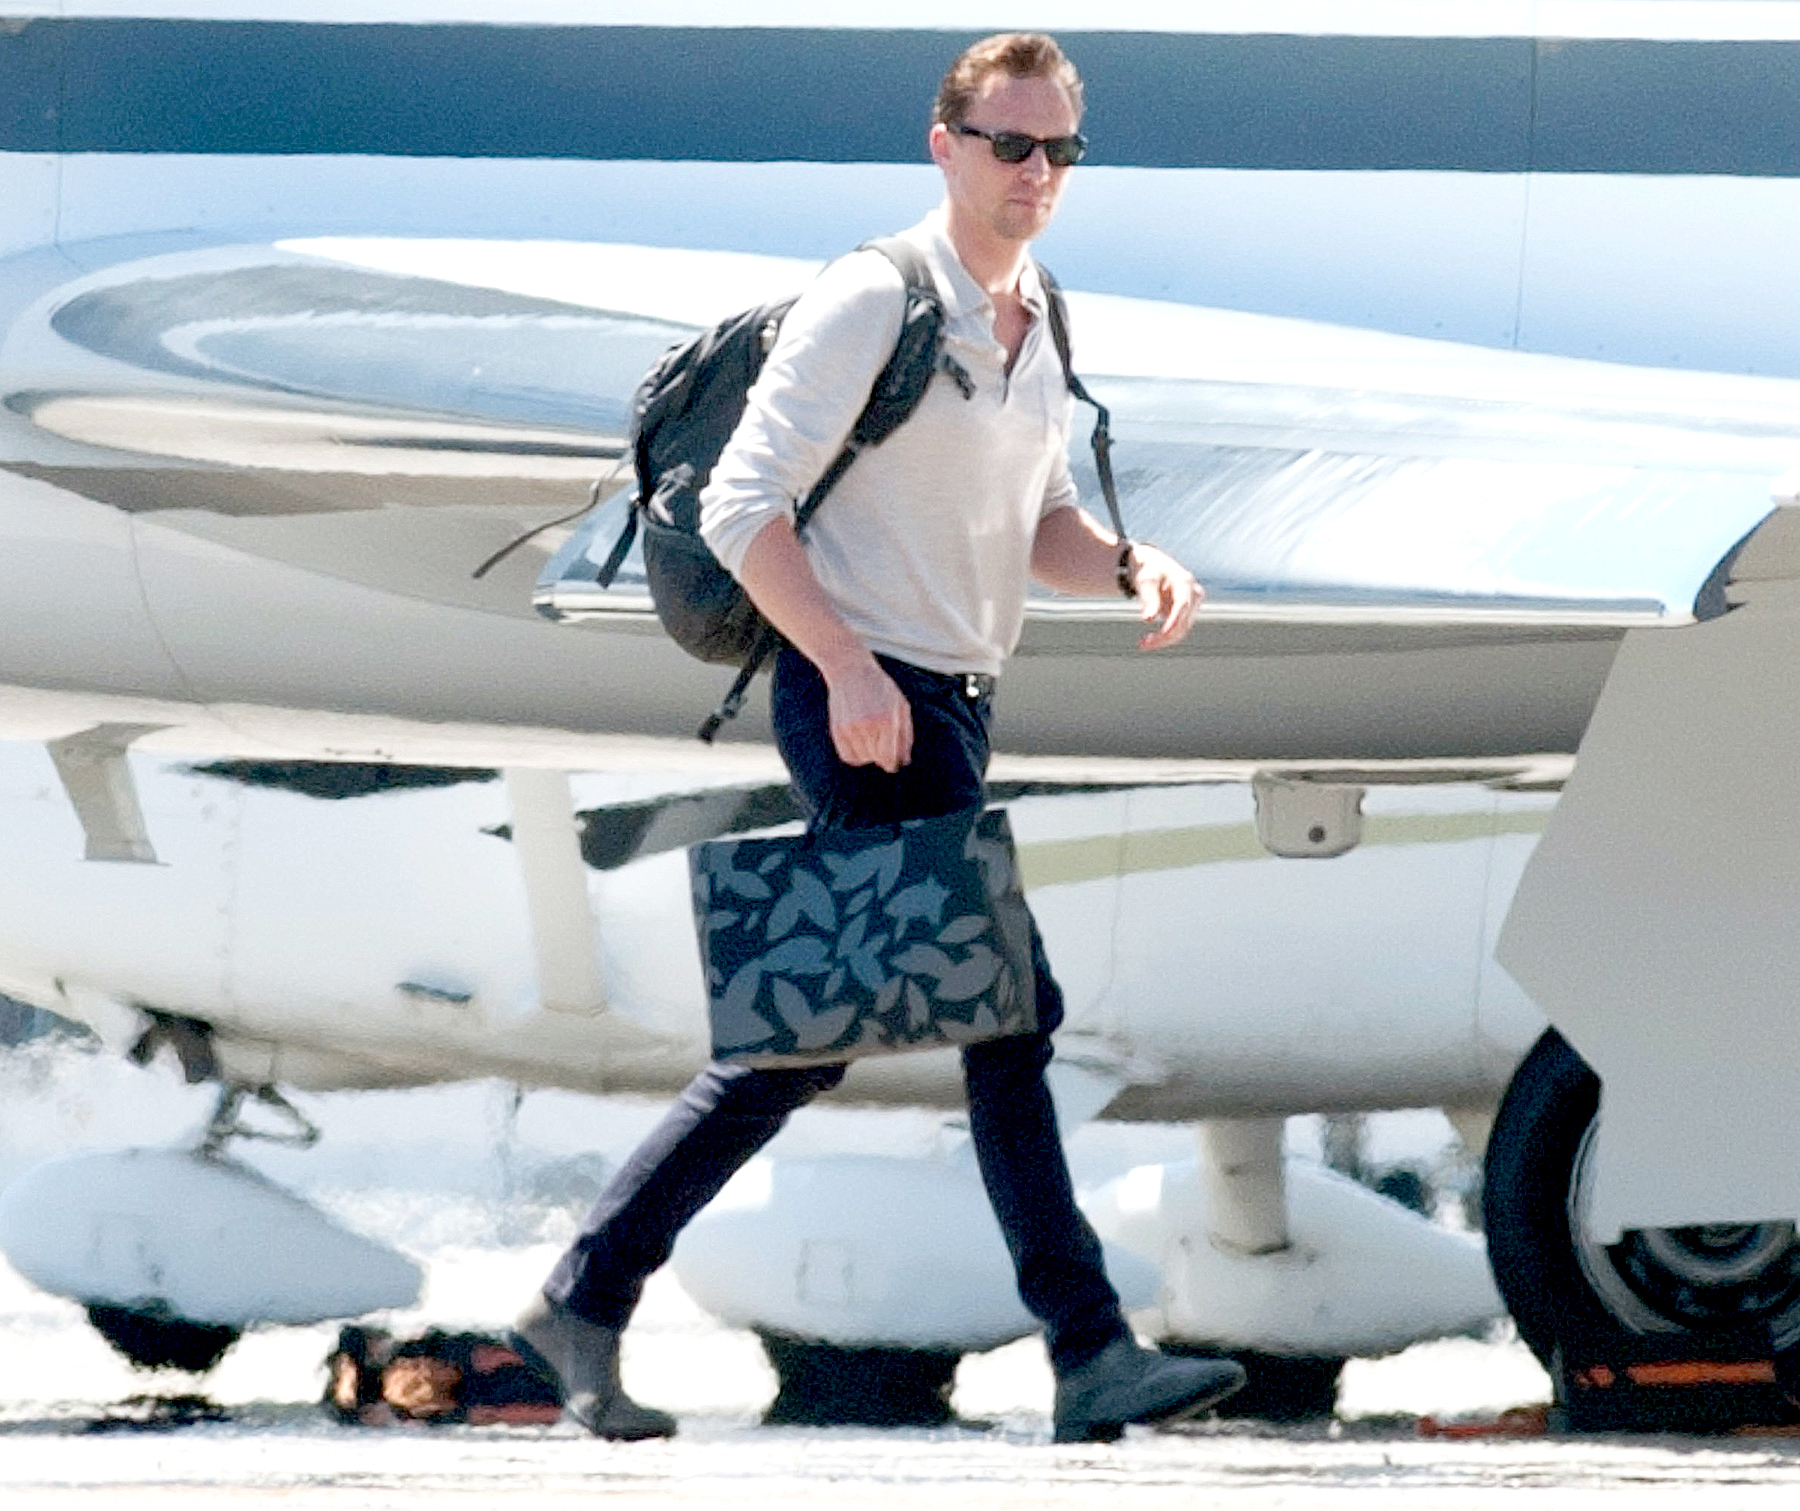 Tom Hiddleston is spotted boarding a private airplane in Los Angeles.